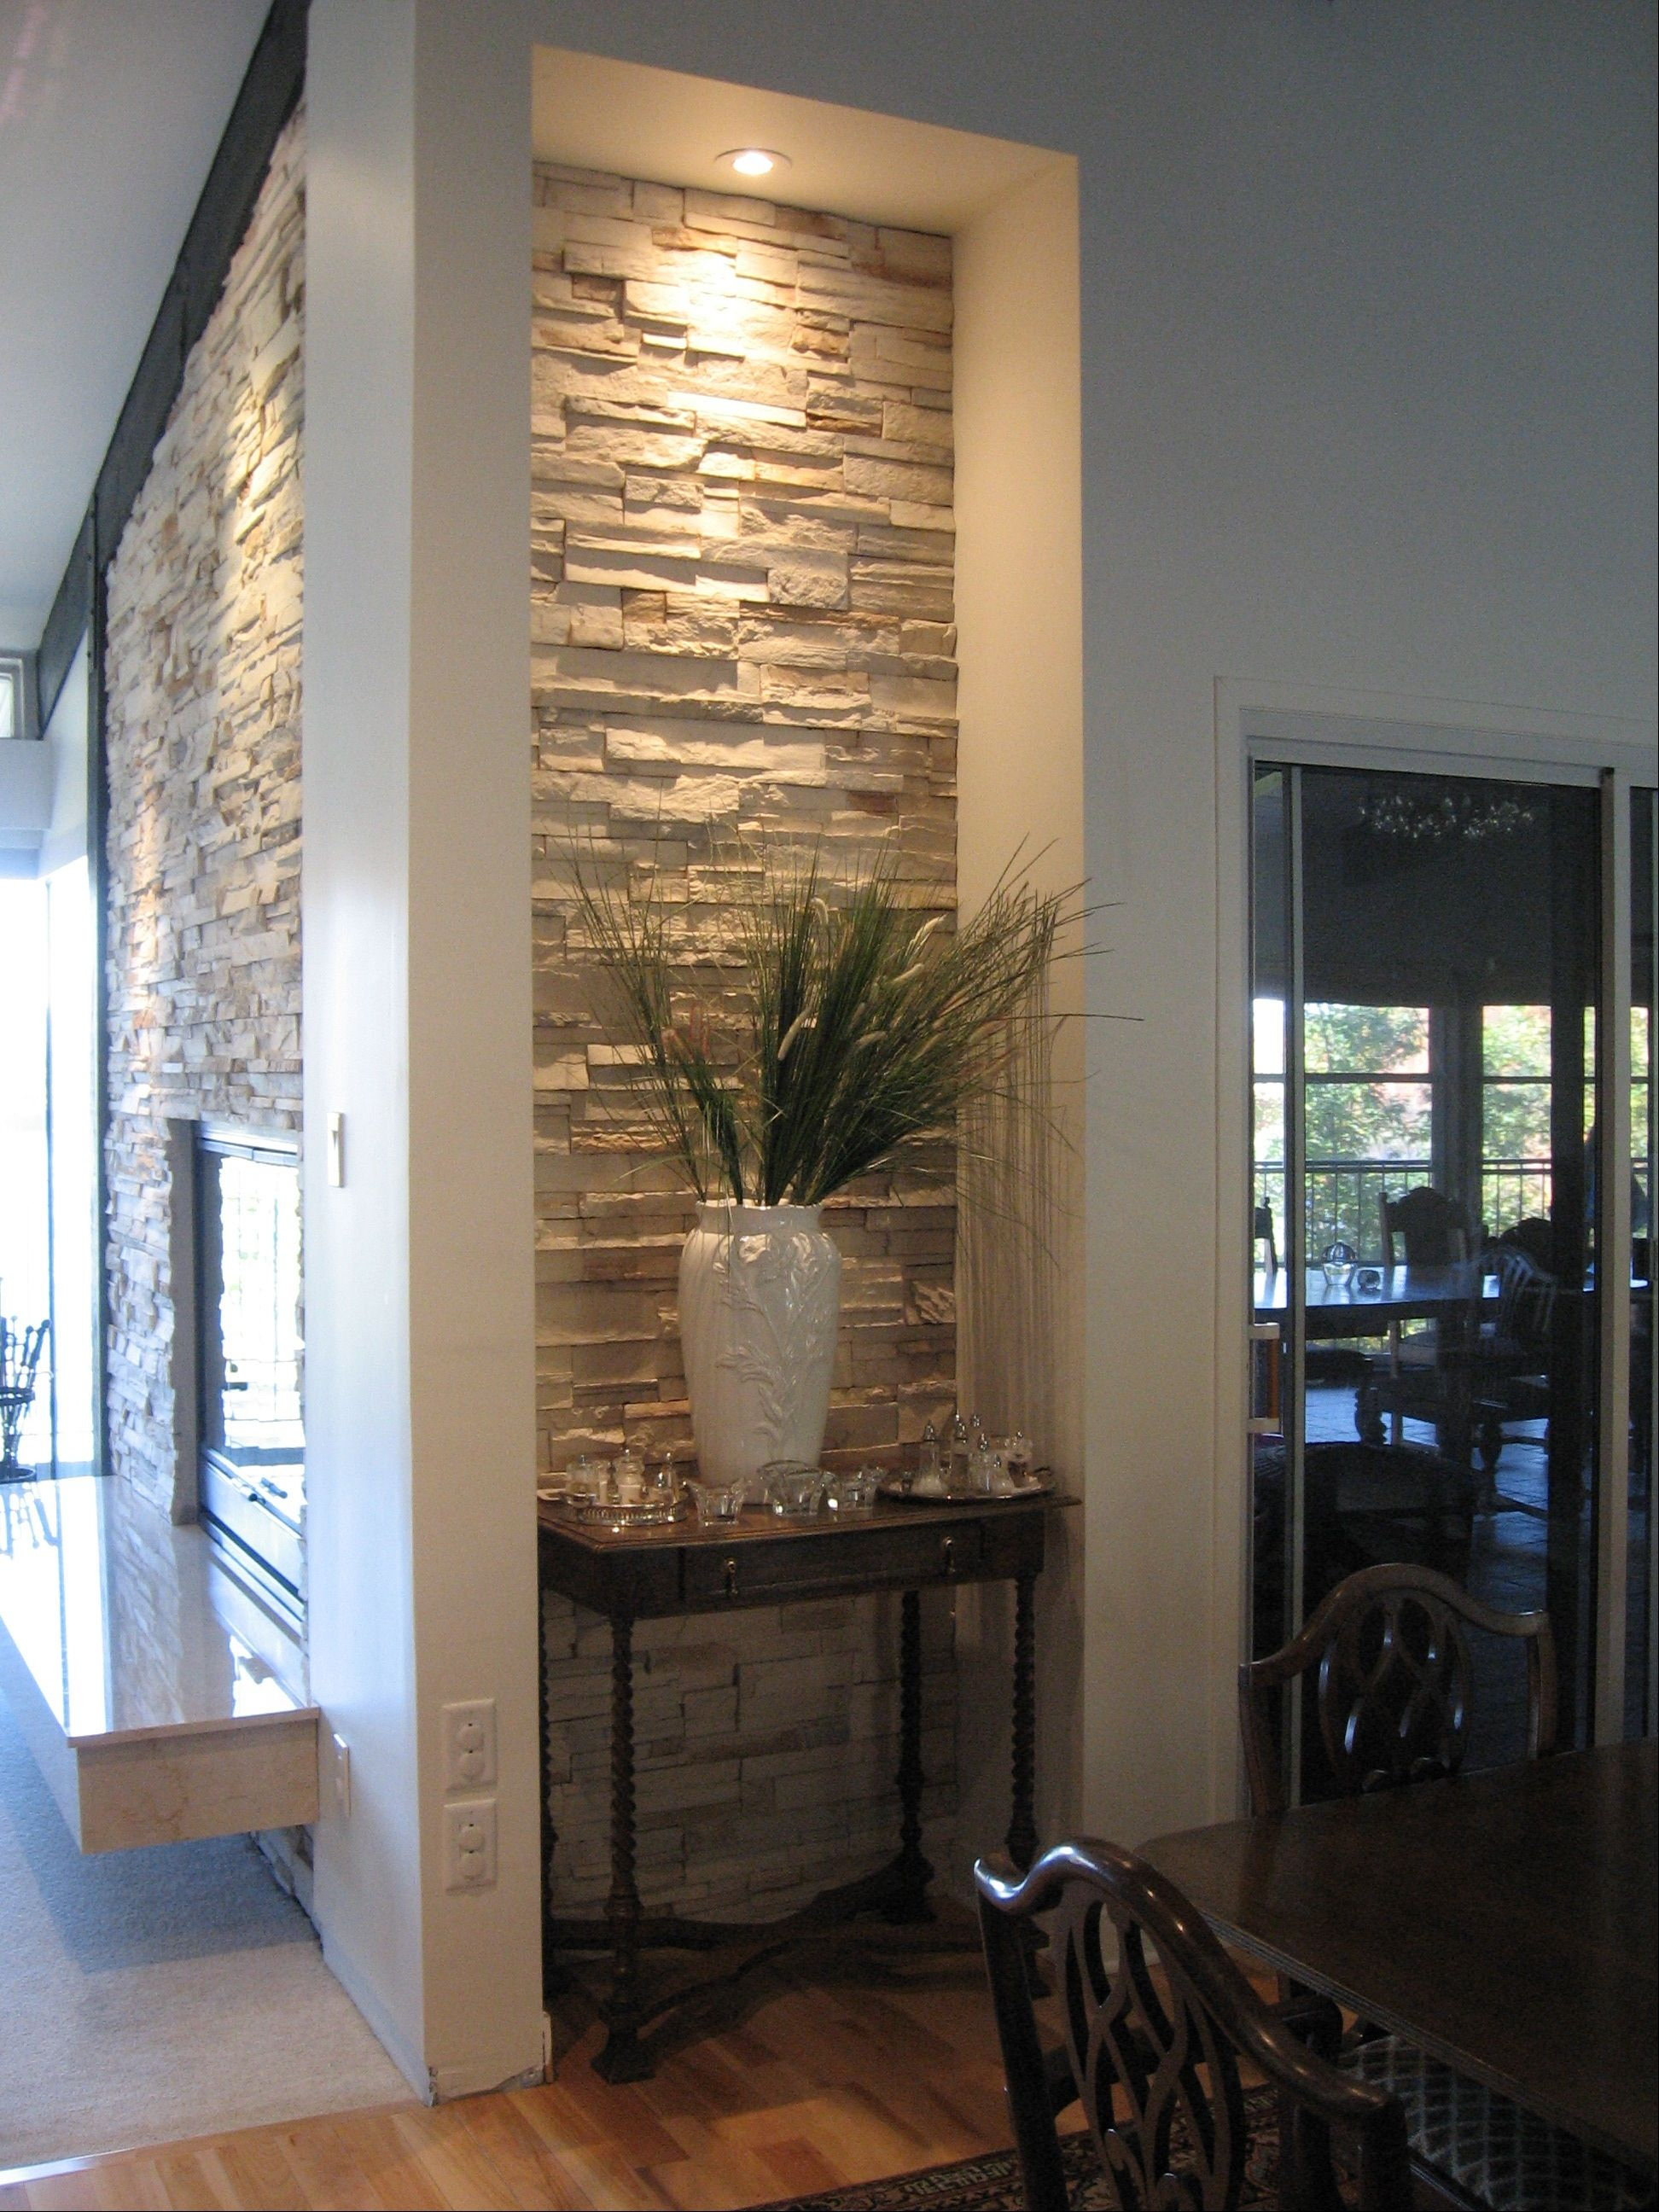 Fireplace done with Cultured Stone Southwest Blend Profit